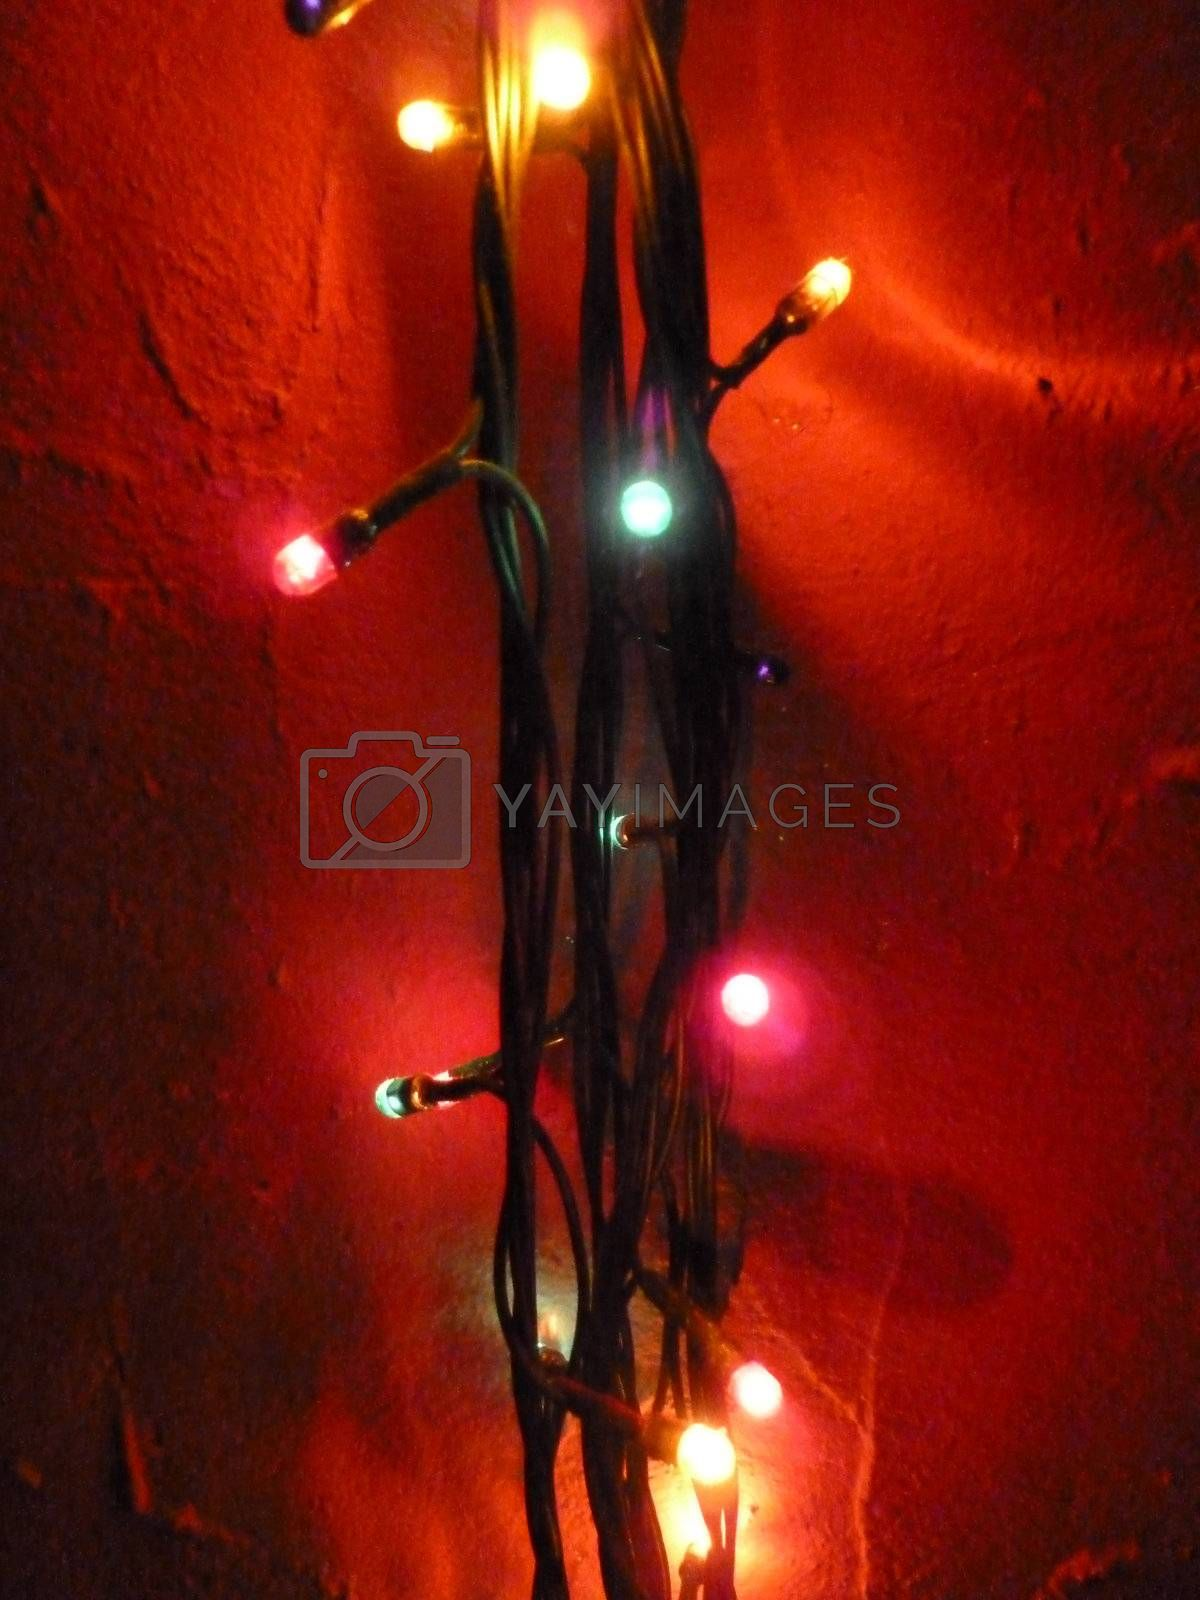 string of lights on a red background